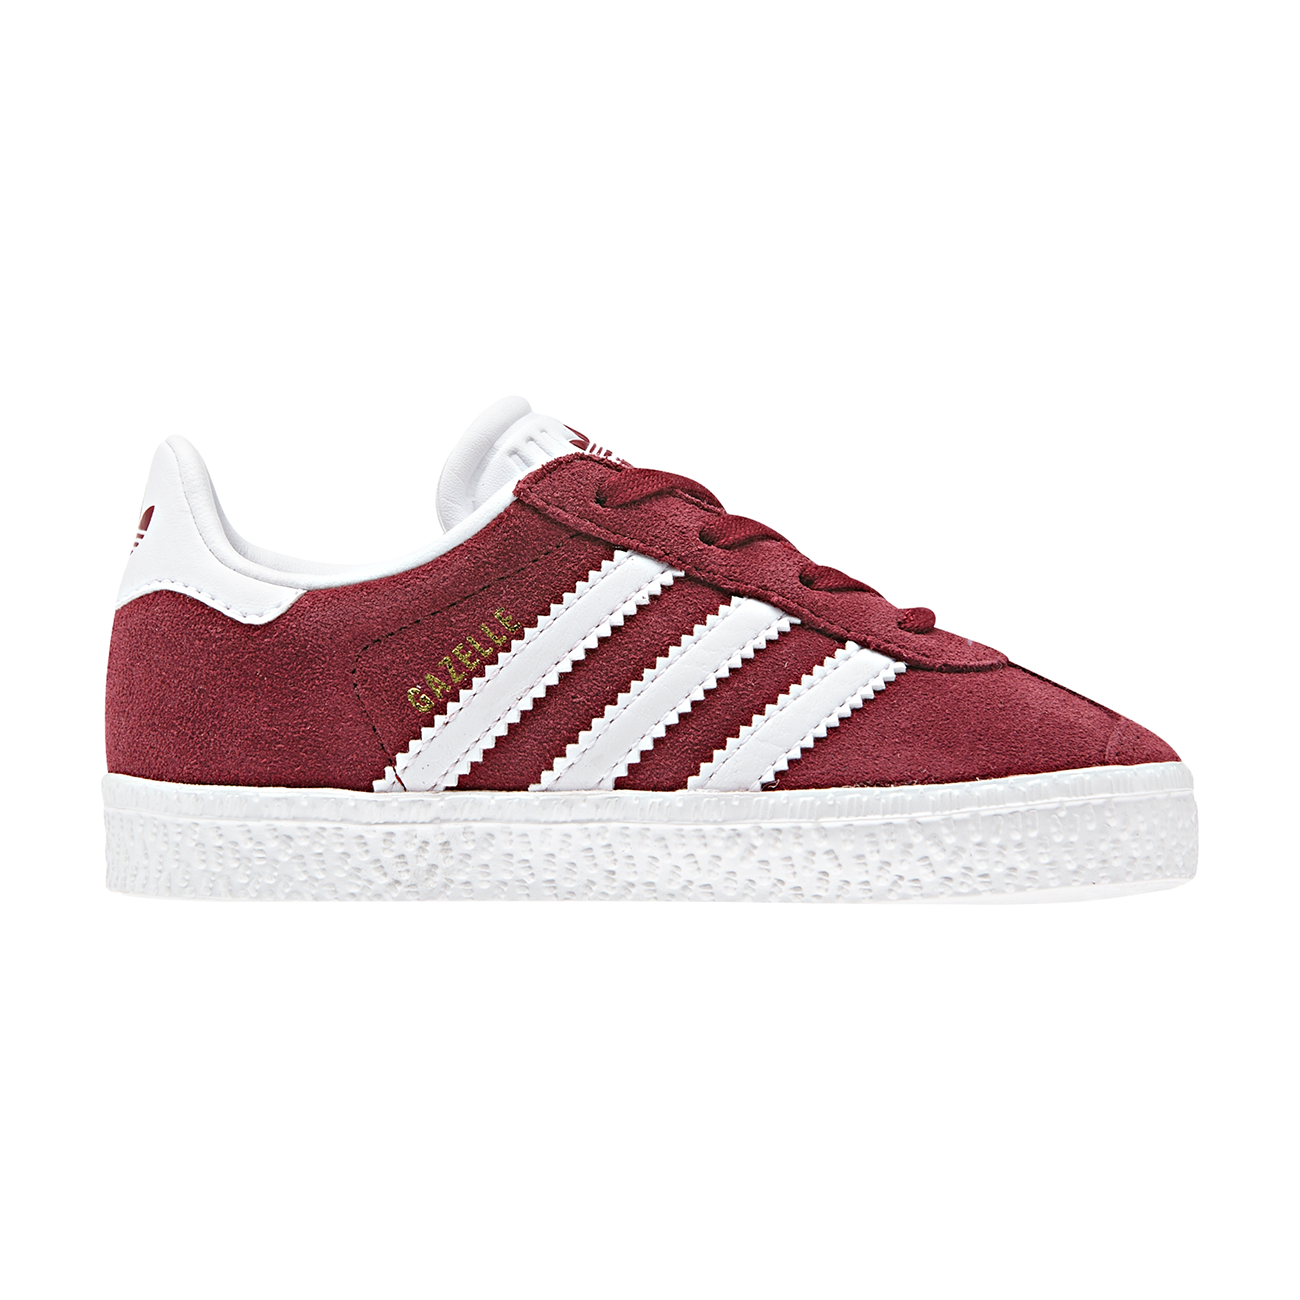 99e99c8a263 adidas-gazelle-sneakers-bordeauz-roed-red-sko-kids- ...